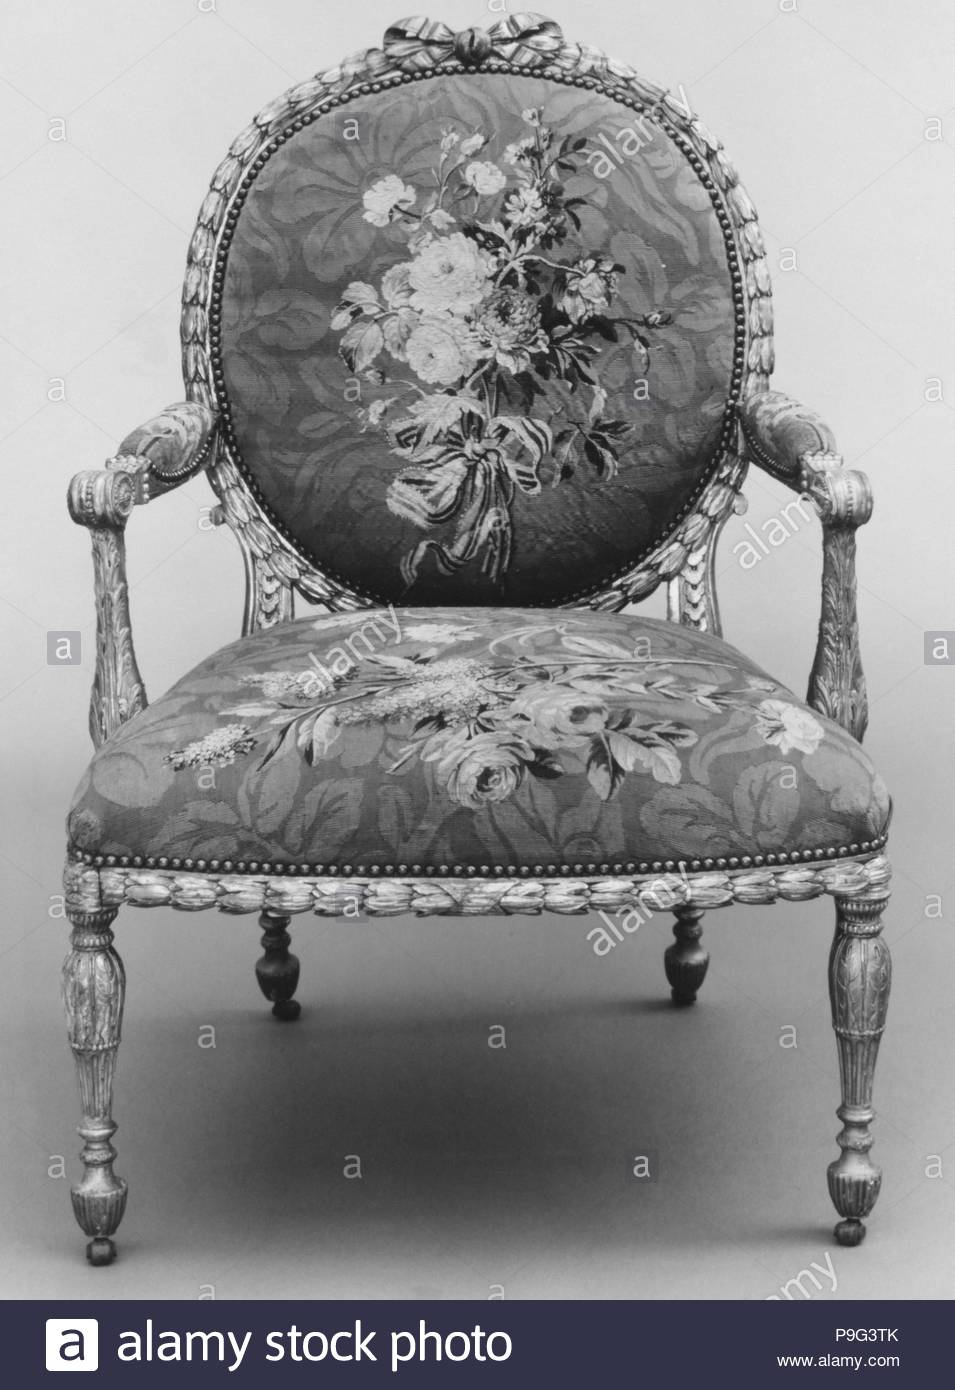 Armchair (one of a set of six), 1769–71, British and French, Gilded fruitwood; wool and silk (22-24 warps per inch, 9-10 per centimeter), 41 5/8 × 28 1/2 × 26 in. (105.7 × 72.4 × 66 cm), Woodwork-Furniture, John Mayhew (British, 1736–1811), and William Ince (British, active ca. 1758/59–1794, died 1804), Workshop of Jacques Neilson (French, 1714–1788). - Stock Image